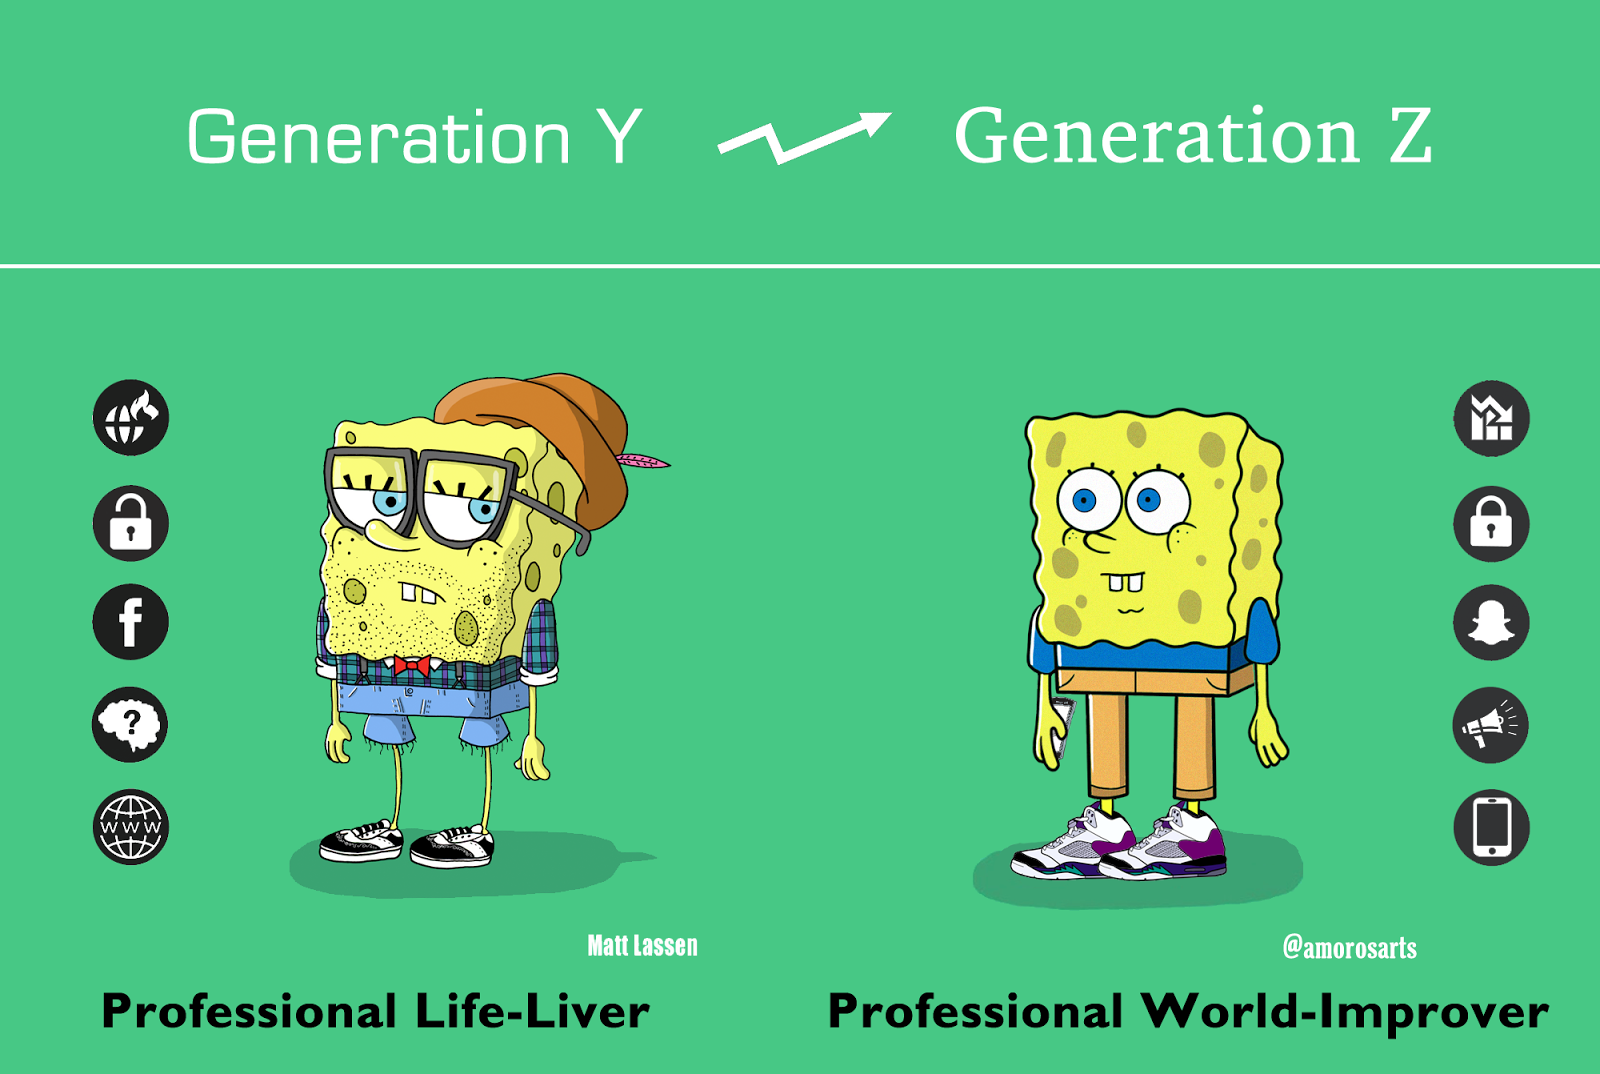 Shifts from Generation Y to Generation Z  by Alexander Jagaciak